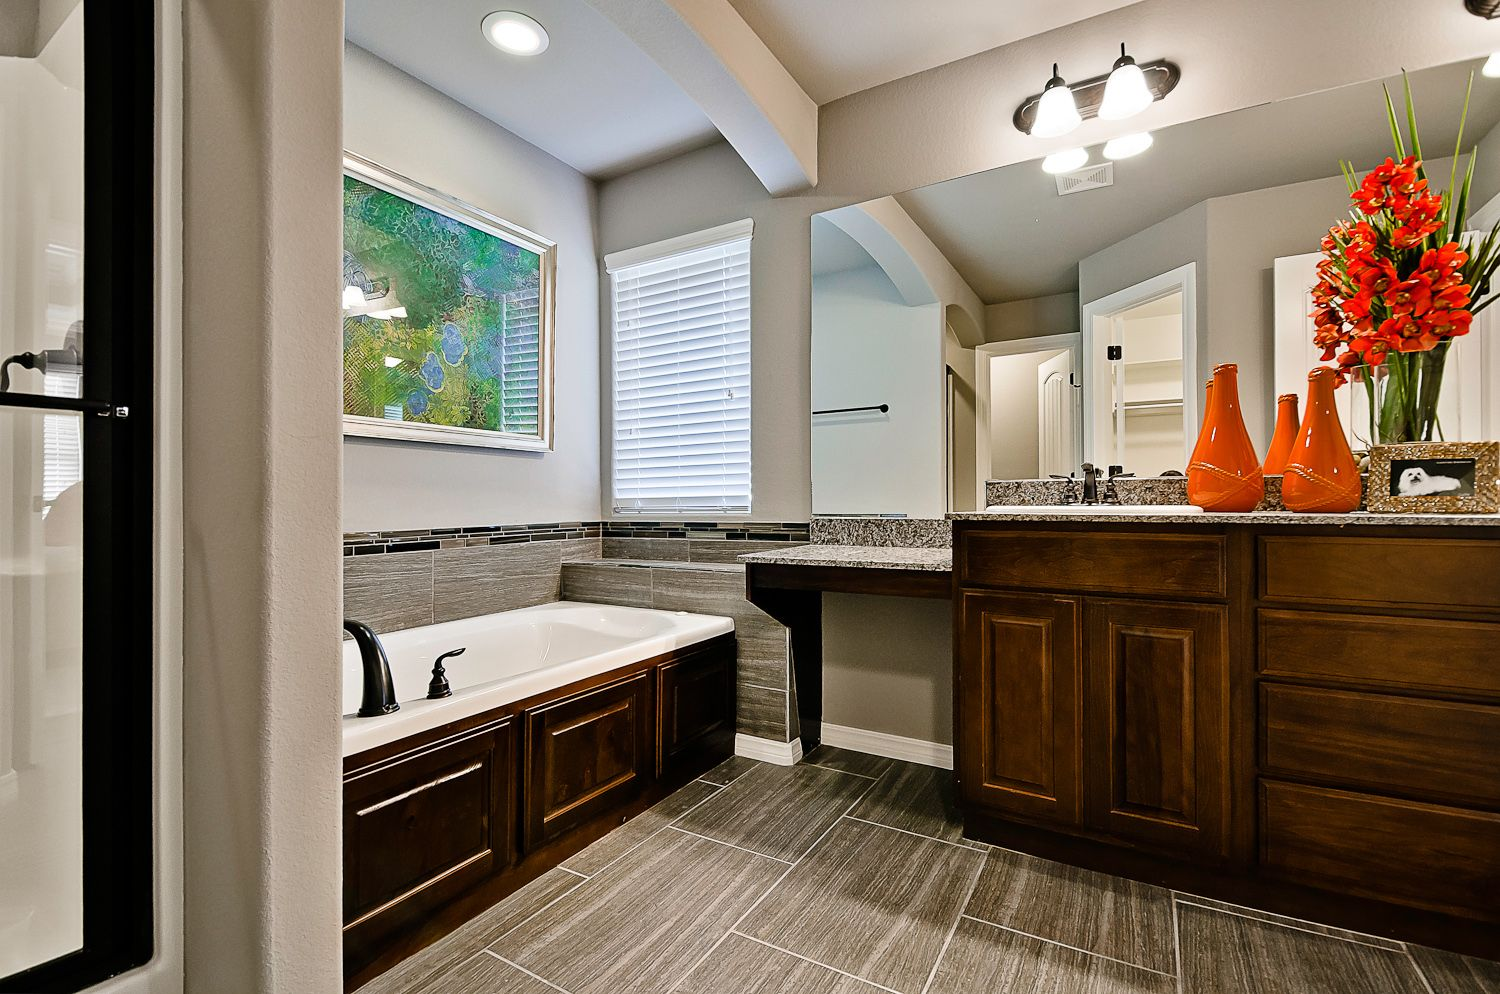 Bathroom featured in the 1556 By Riverwood Homes - Arkansas in Fayetteville, AR